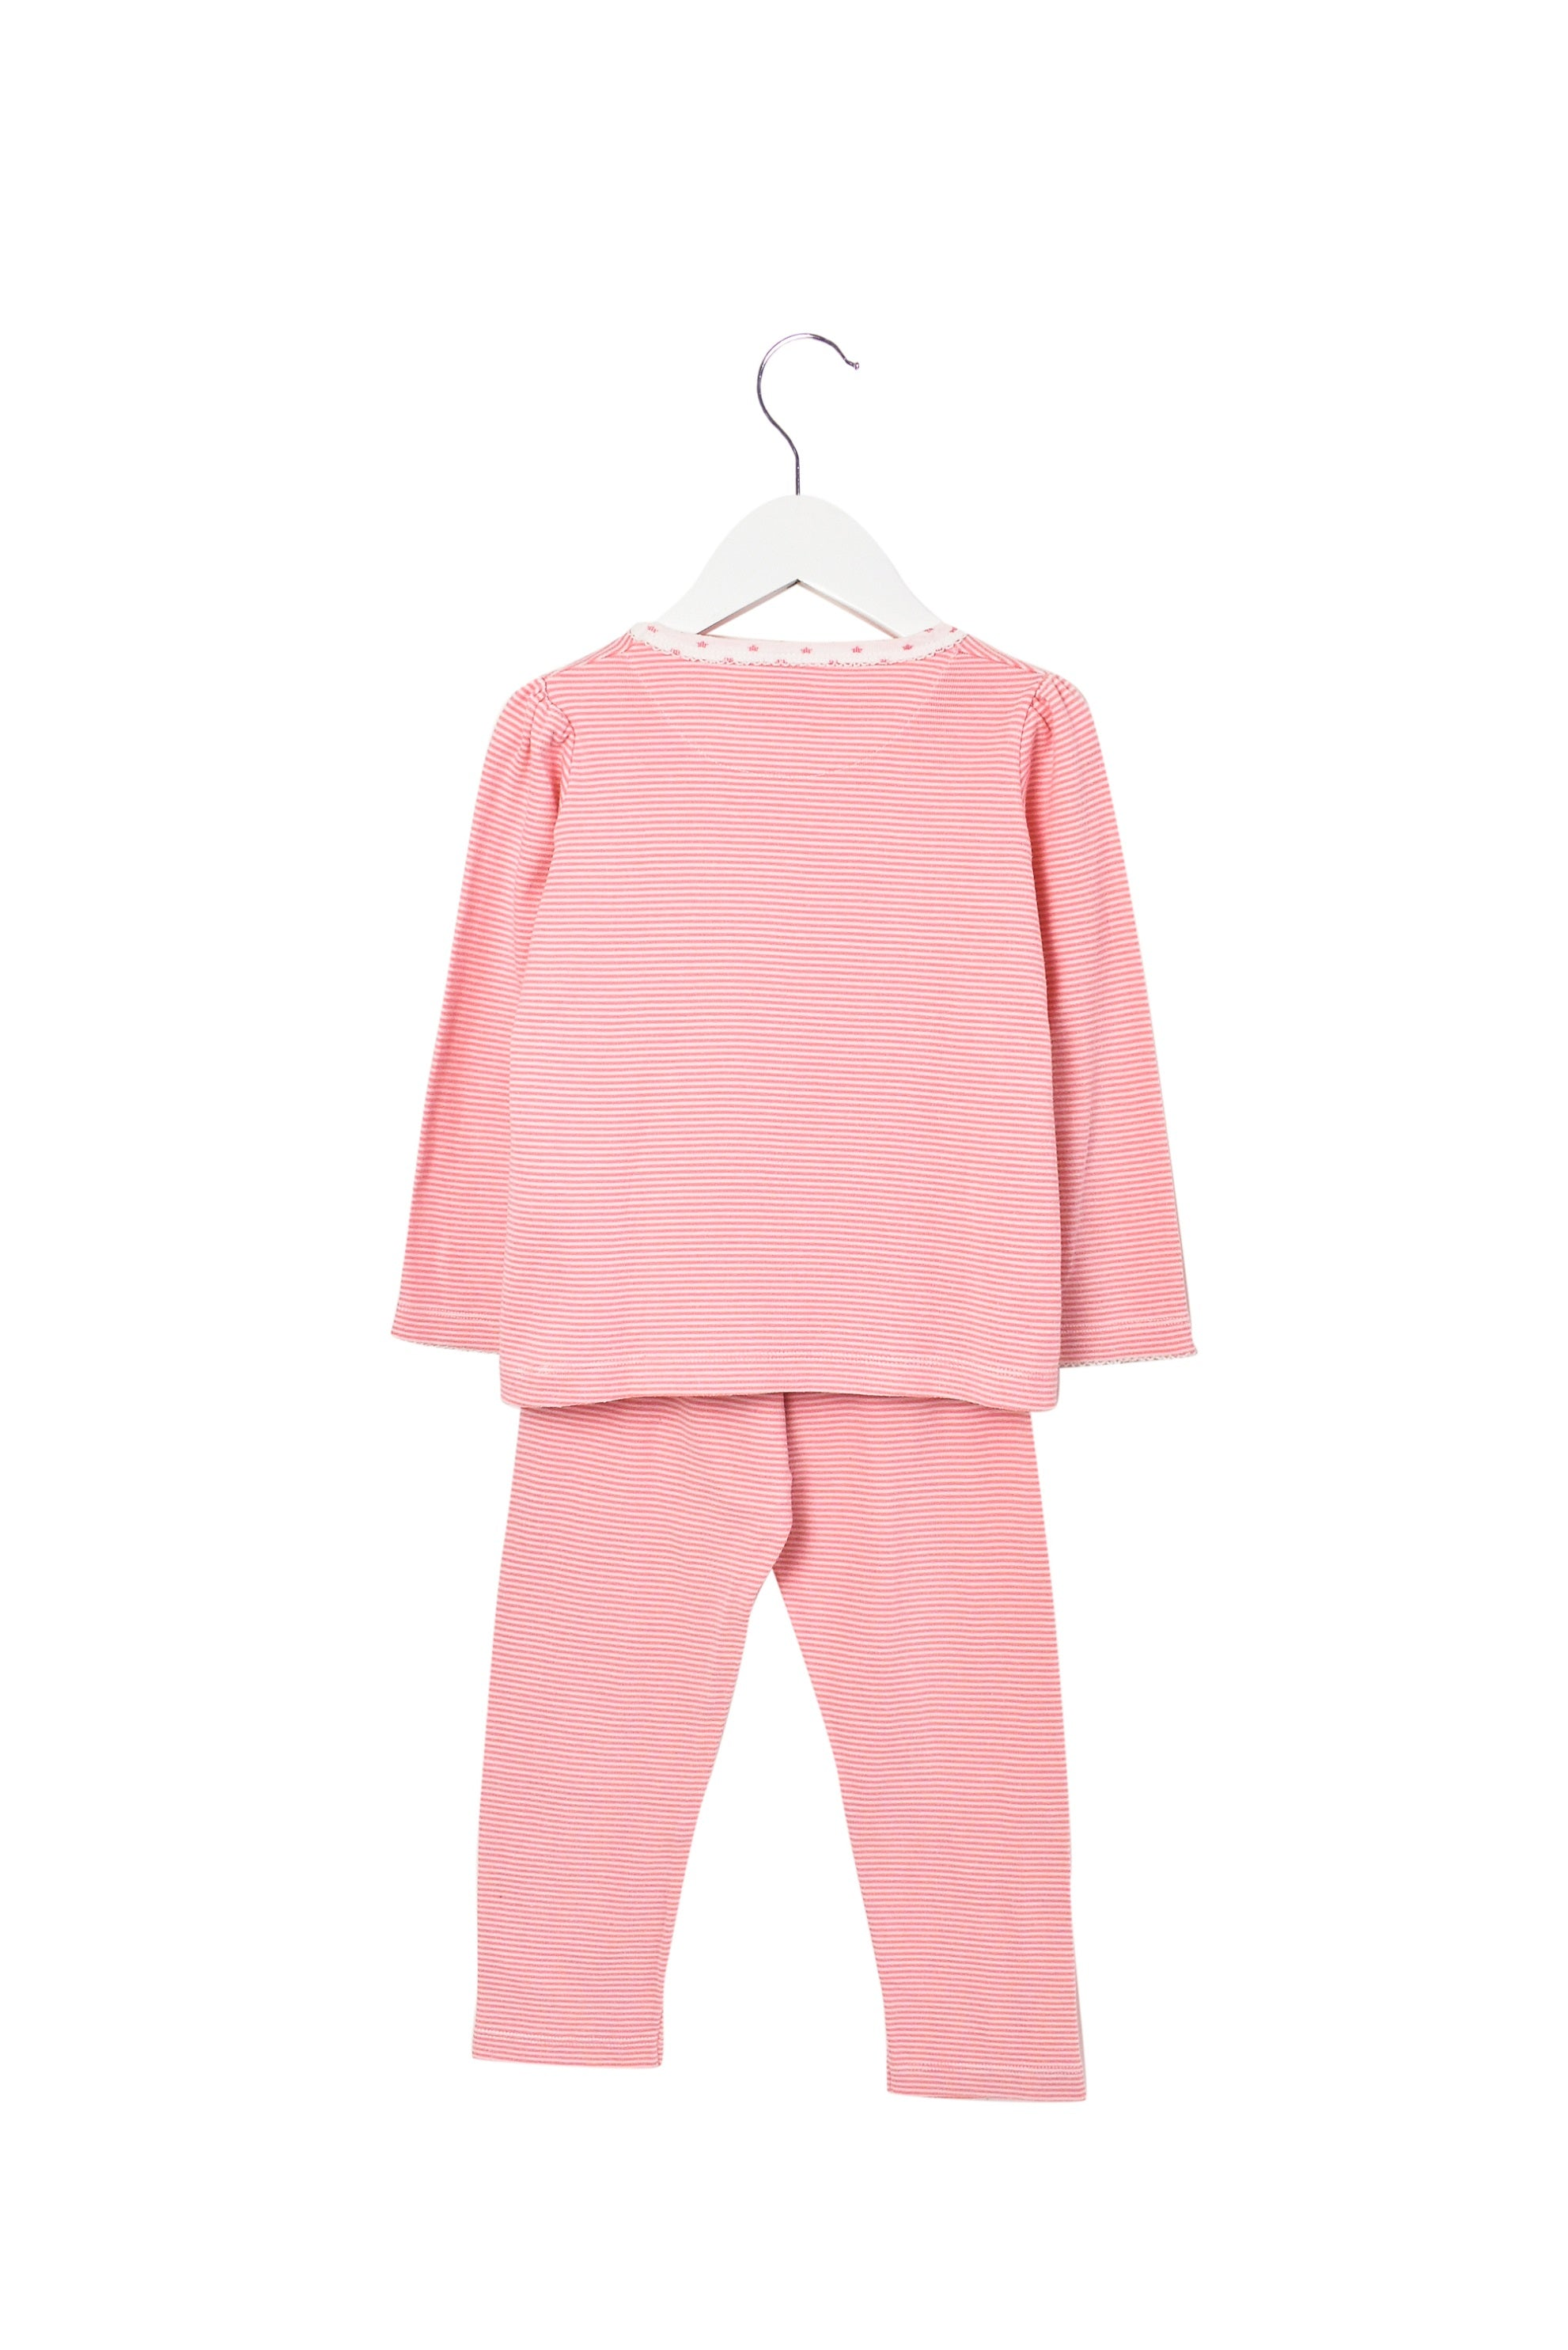 10007701 Petit Bateau Kids~ Top and Pants 4T at Retykle